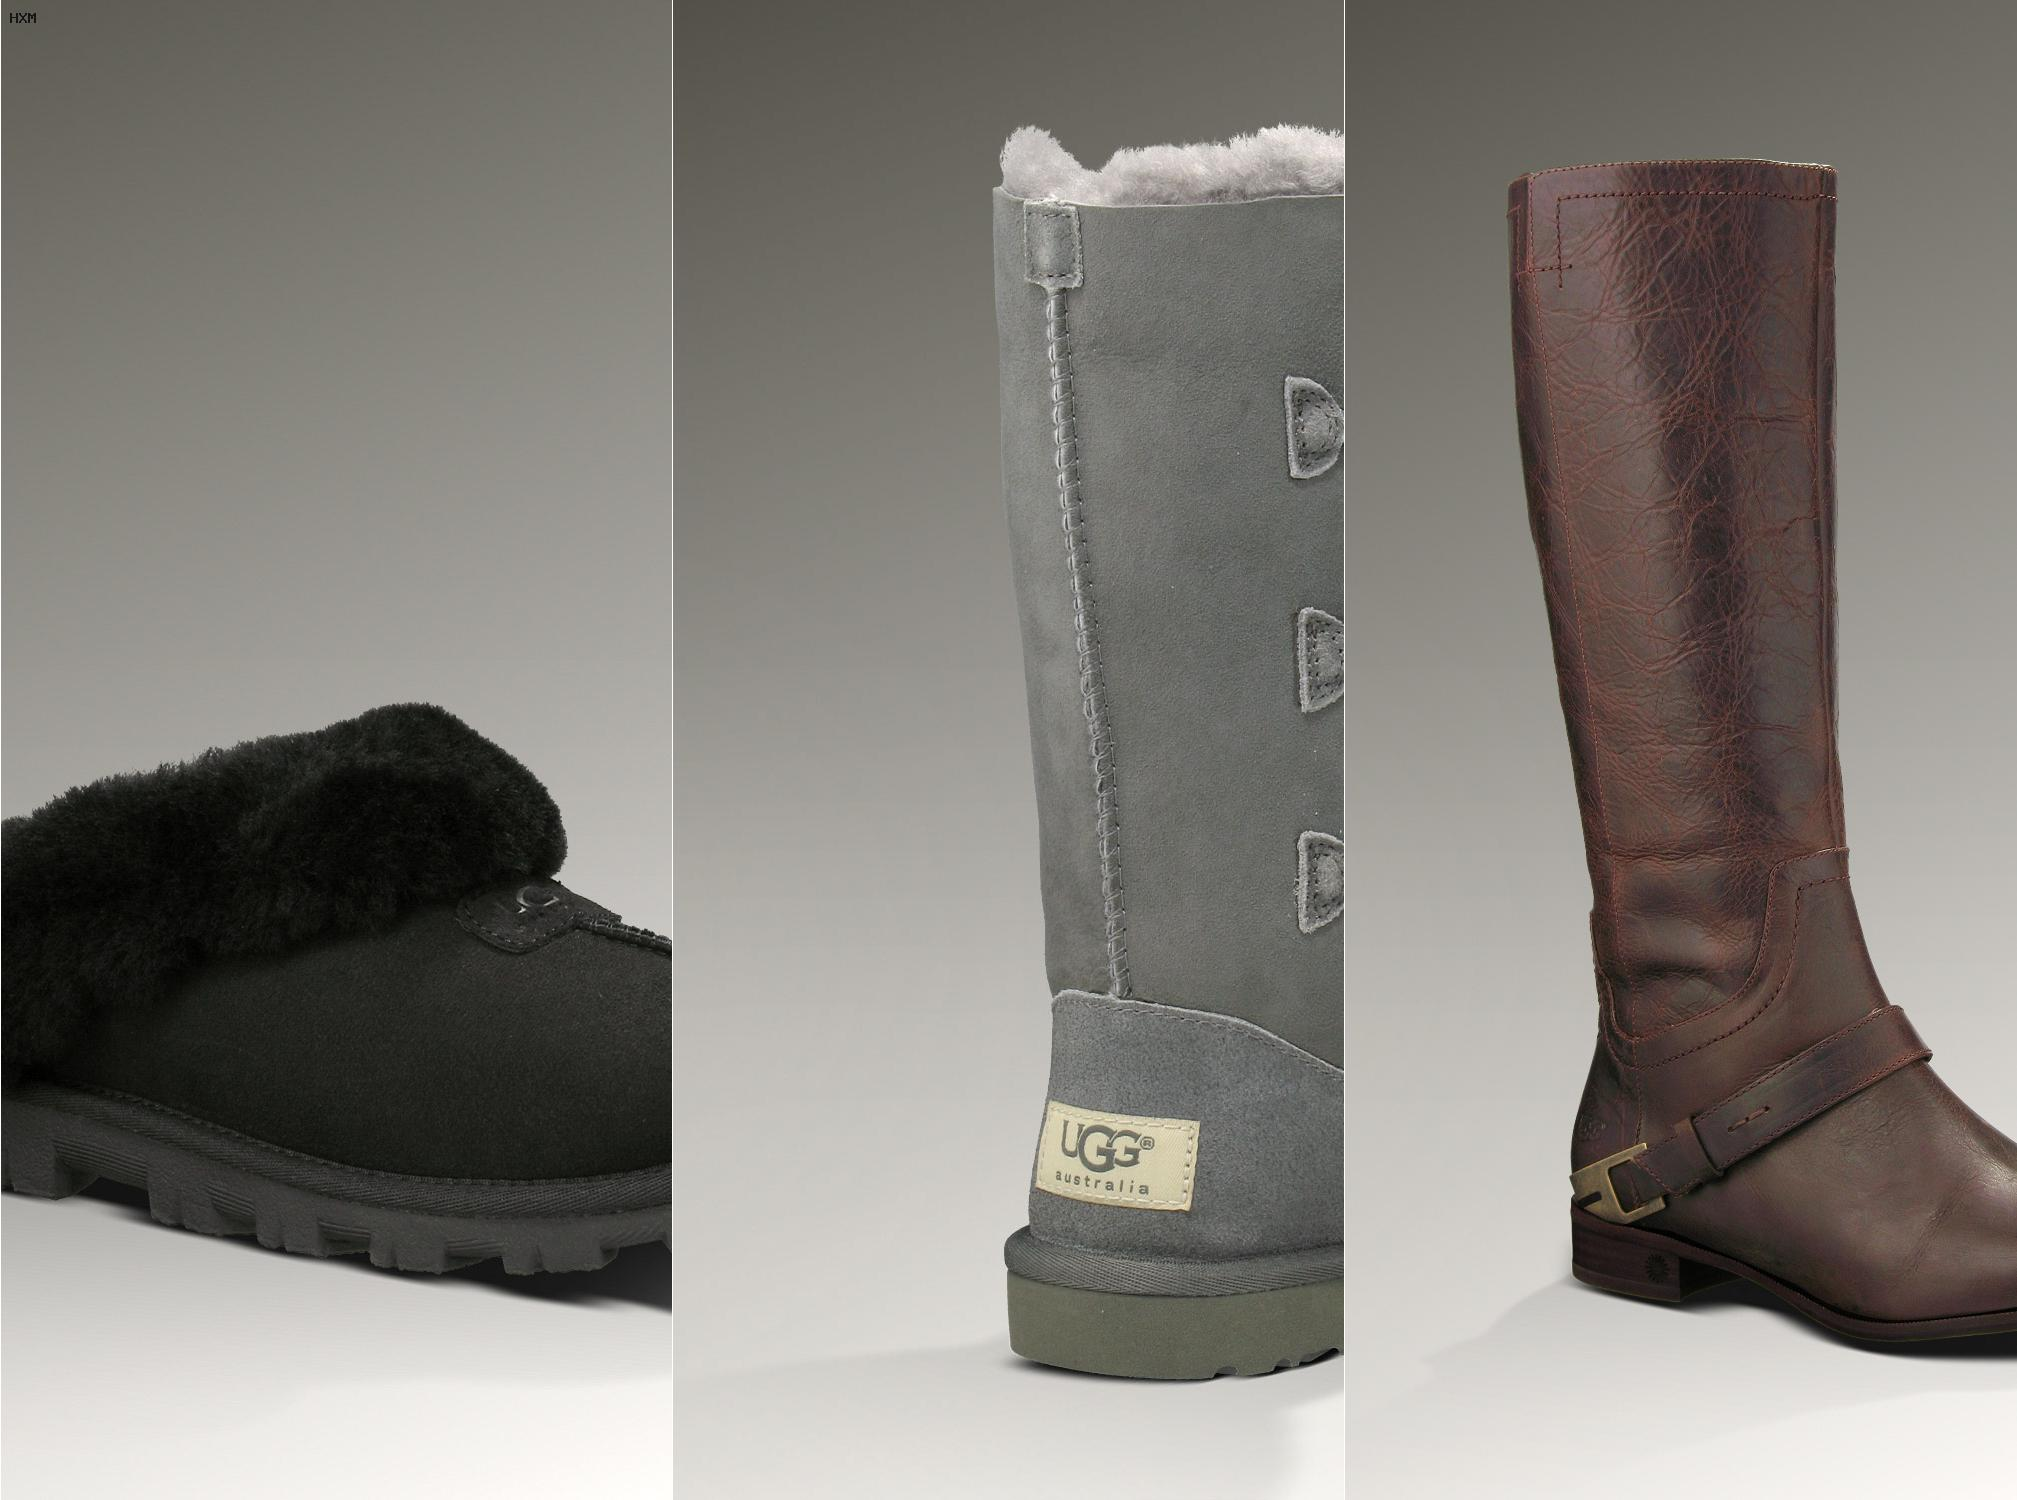 como distinguir ugg originales